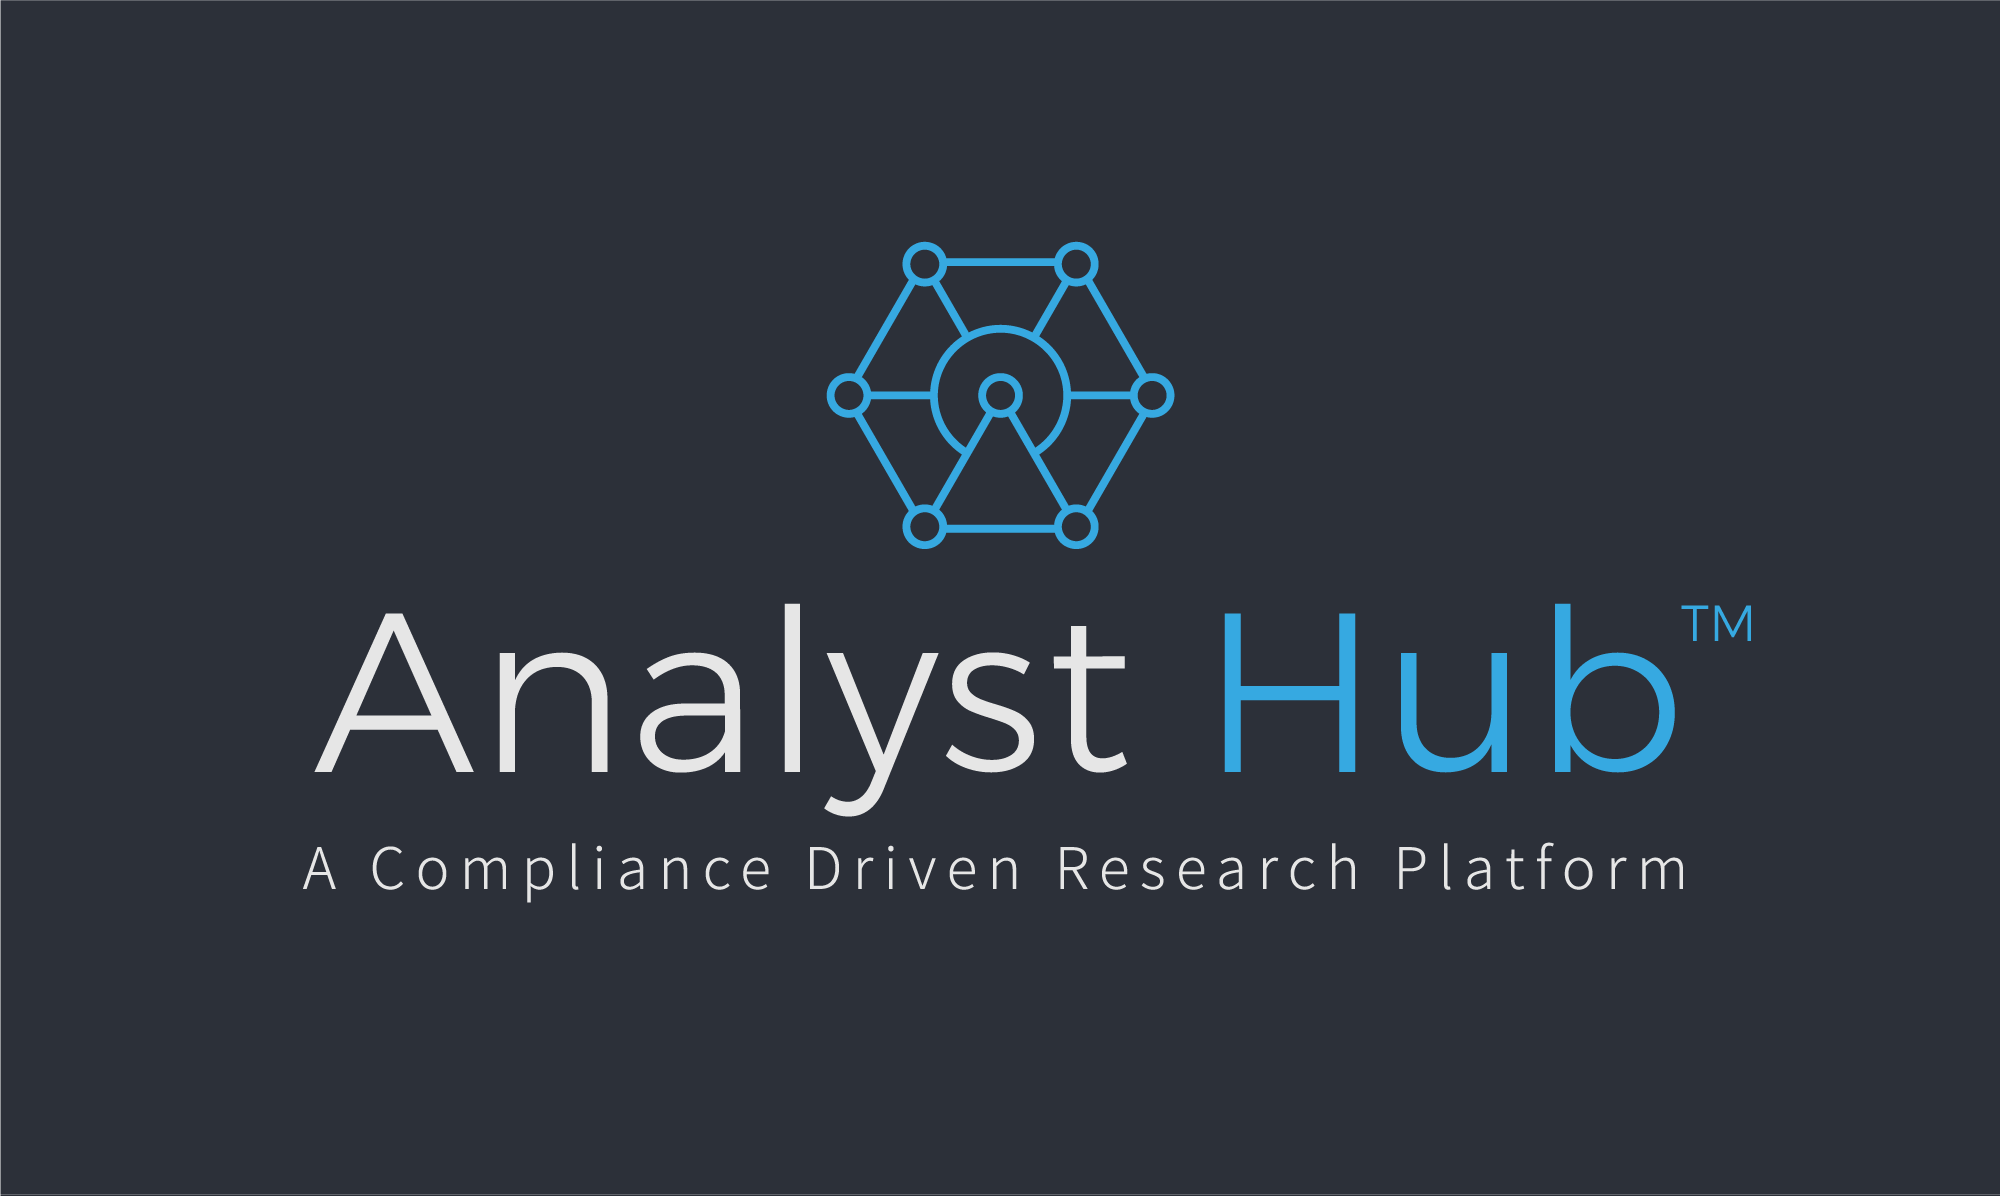 analyst hub logo on dark background